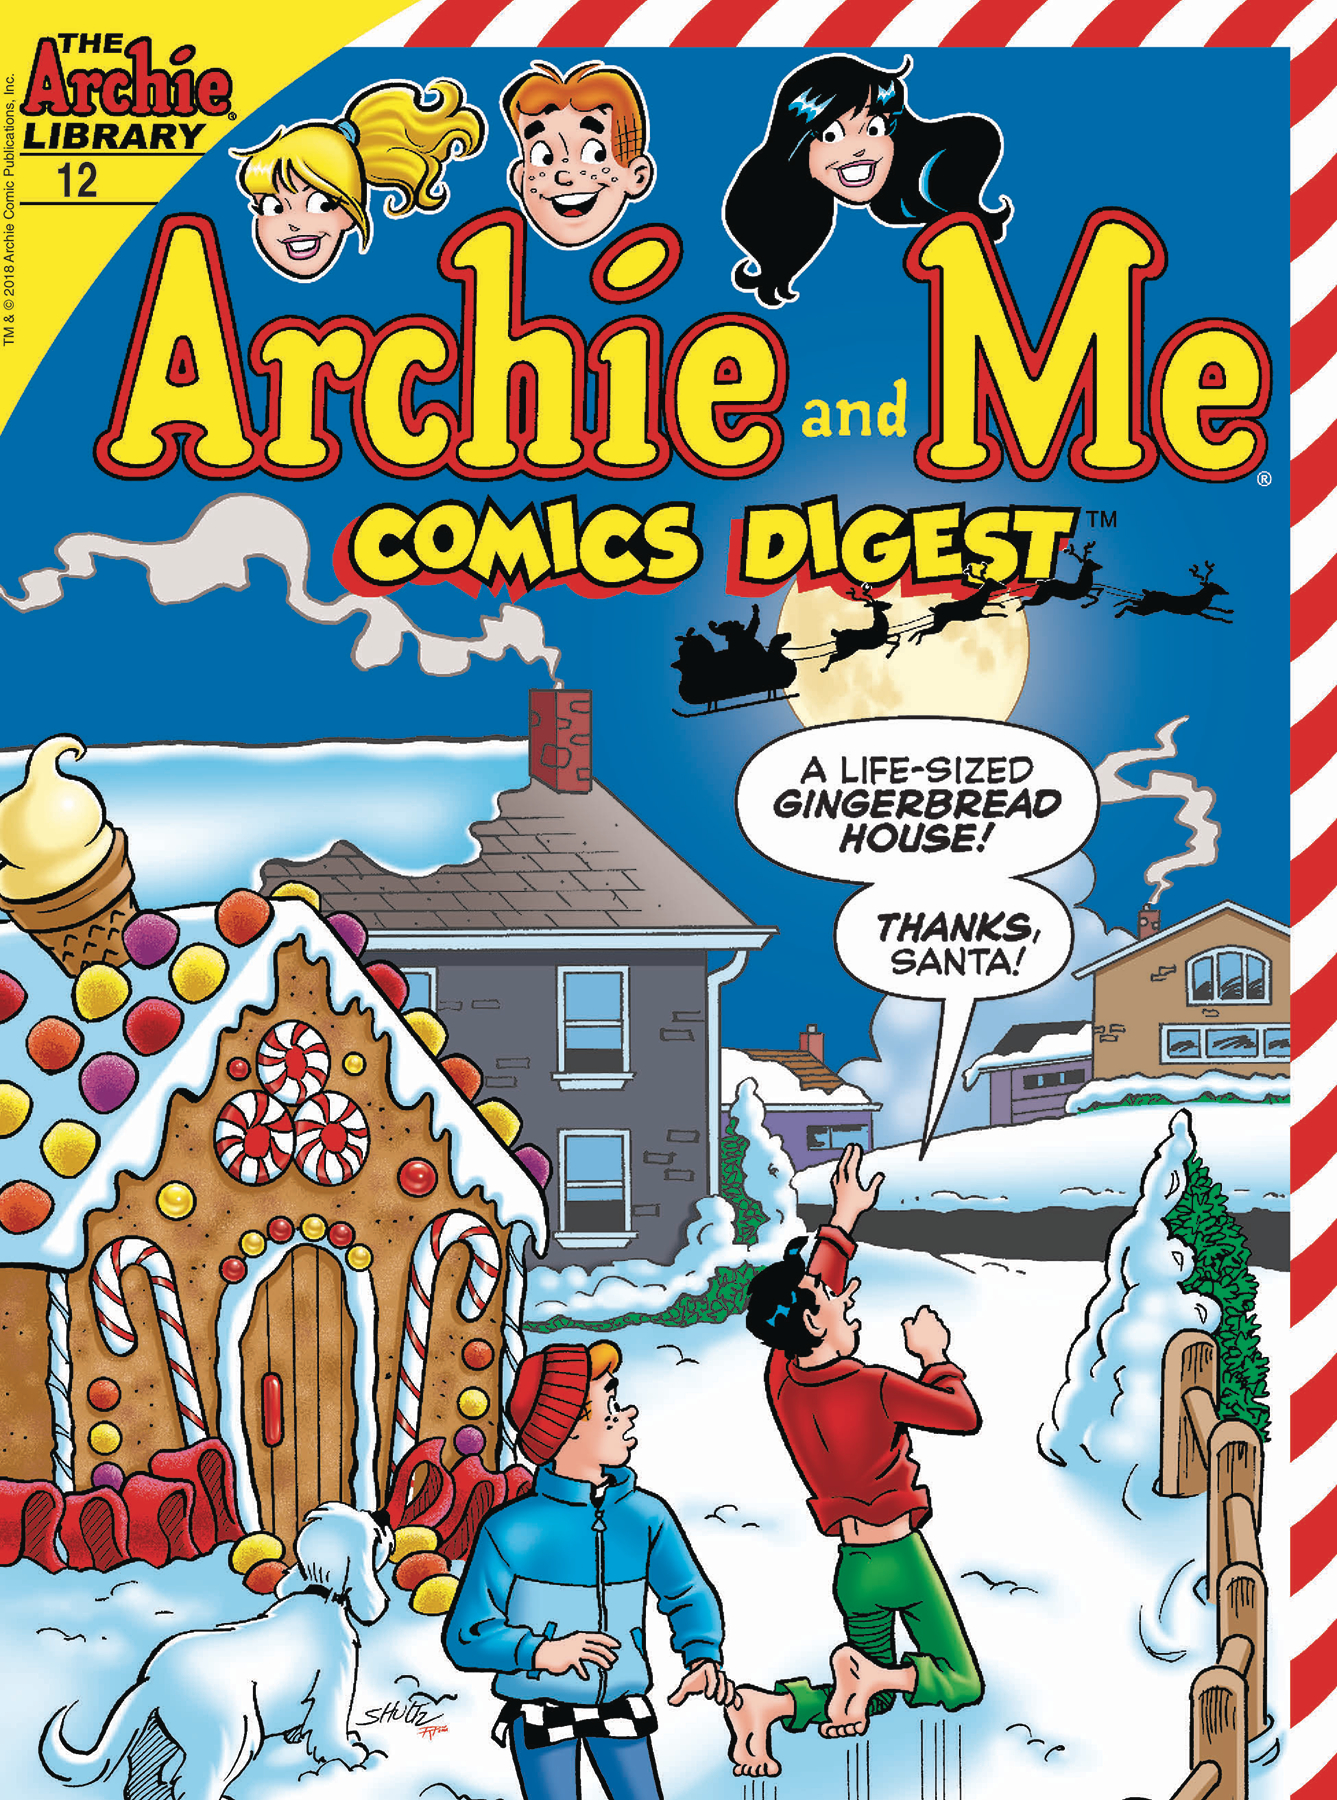 ARCHIE AND ME COMICS DIGEST #12